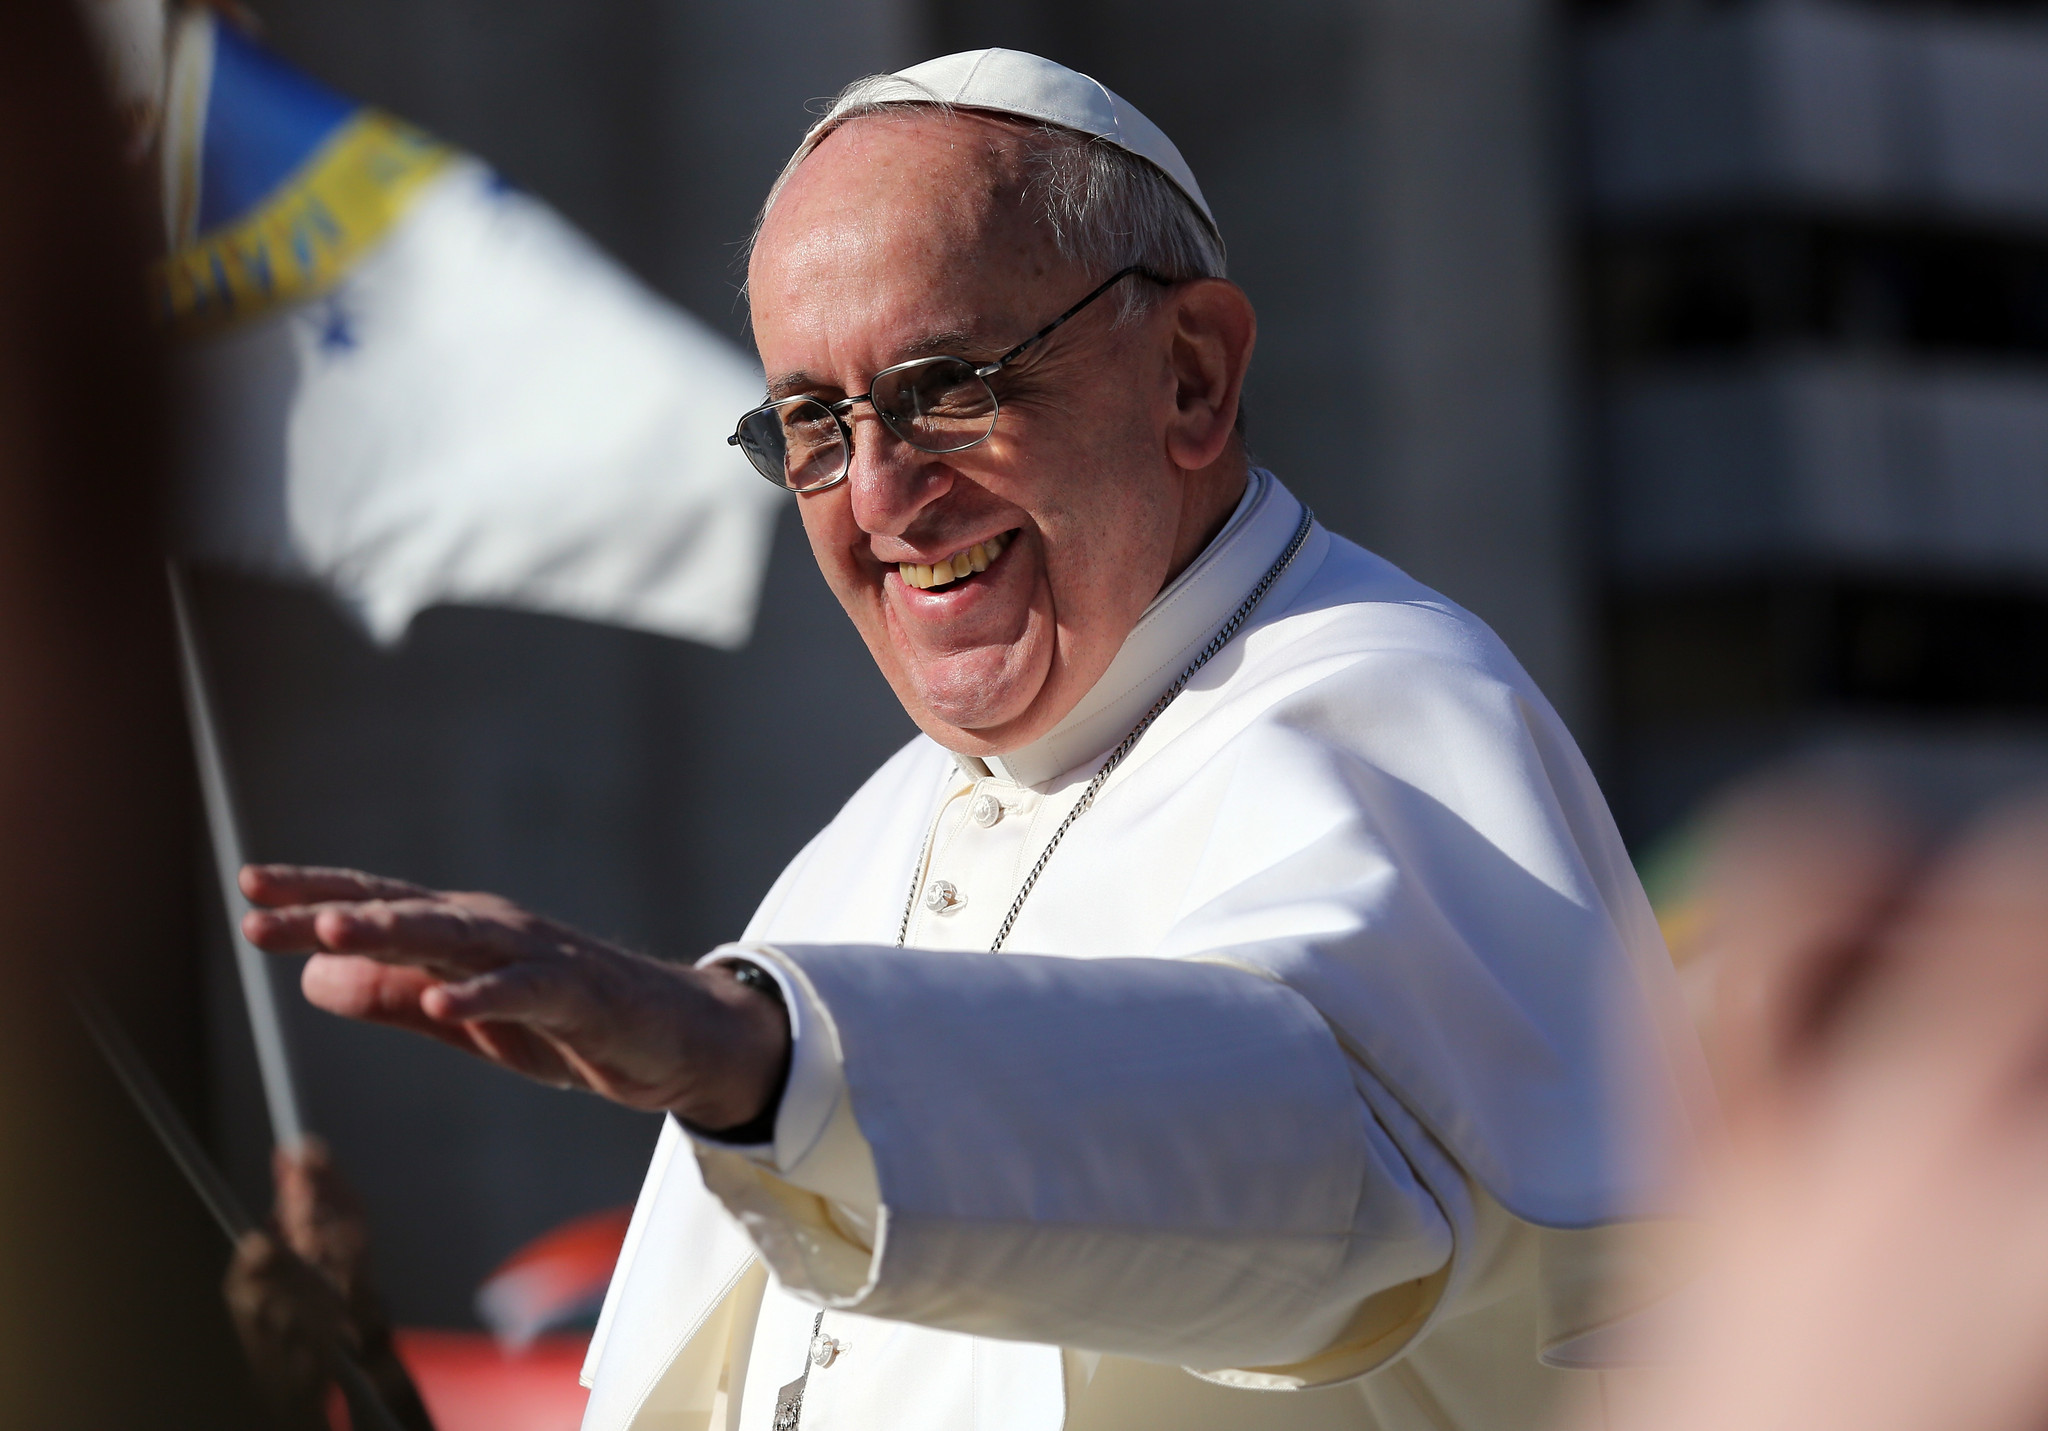 Lessons in leadership from Pope Francis